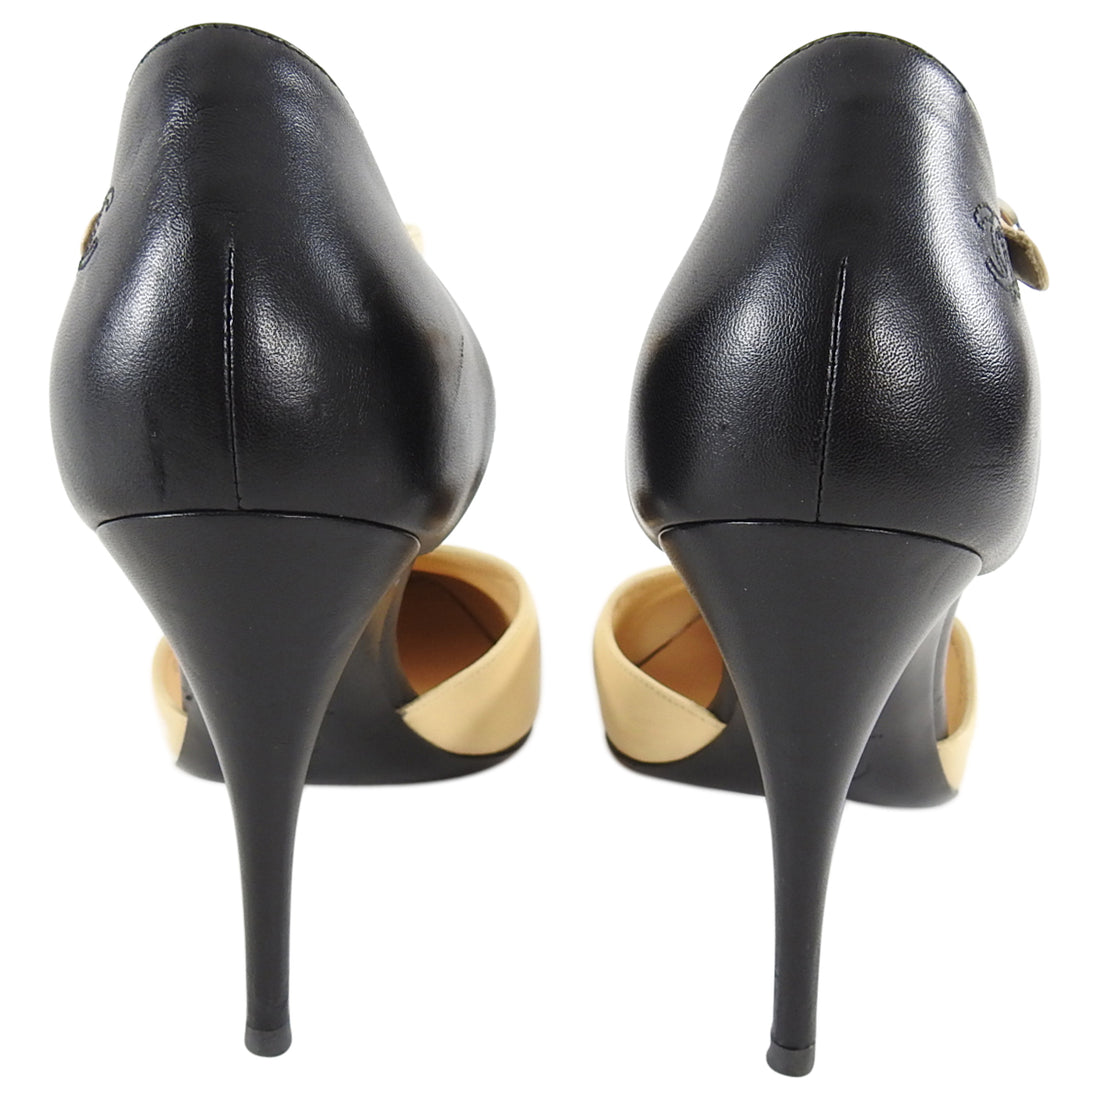 Chanel Beige and Black Cap Toe D'Orsay Heels - 41